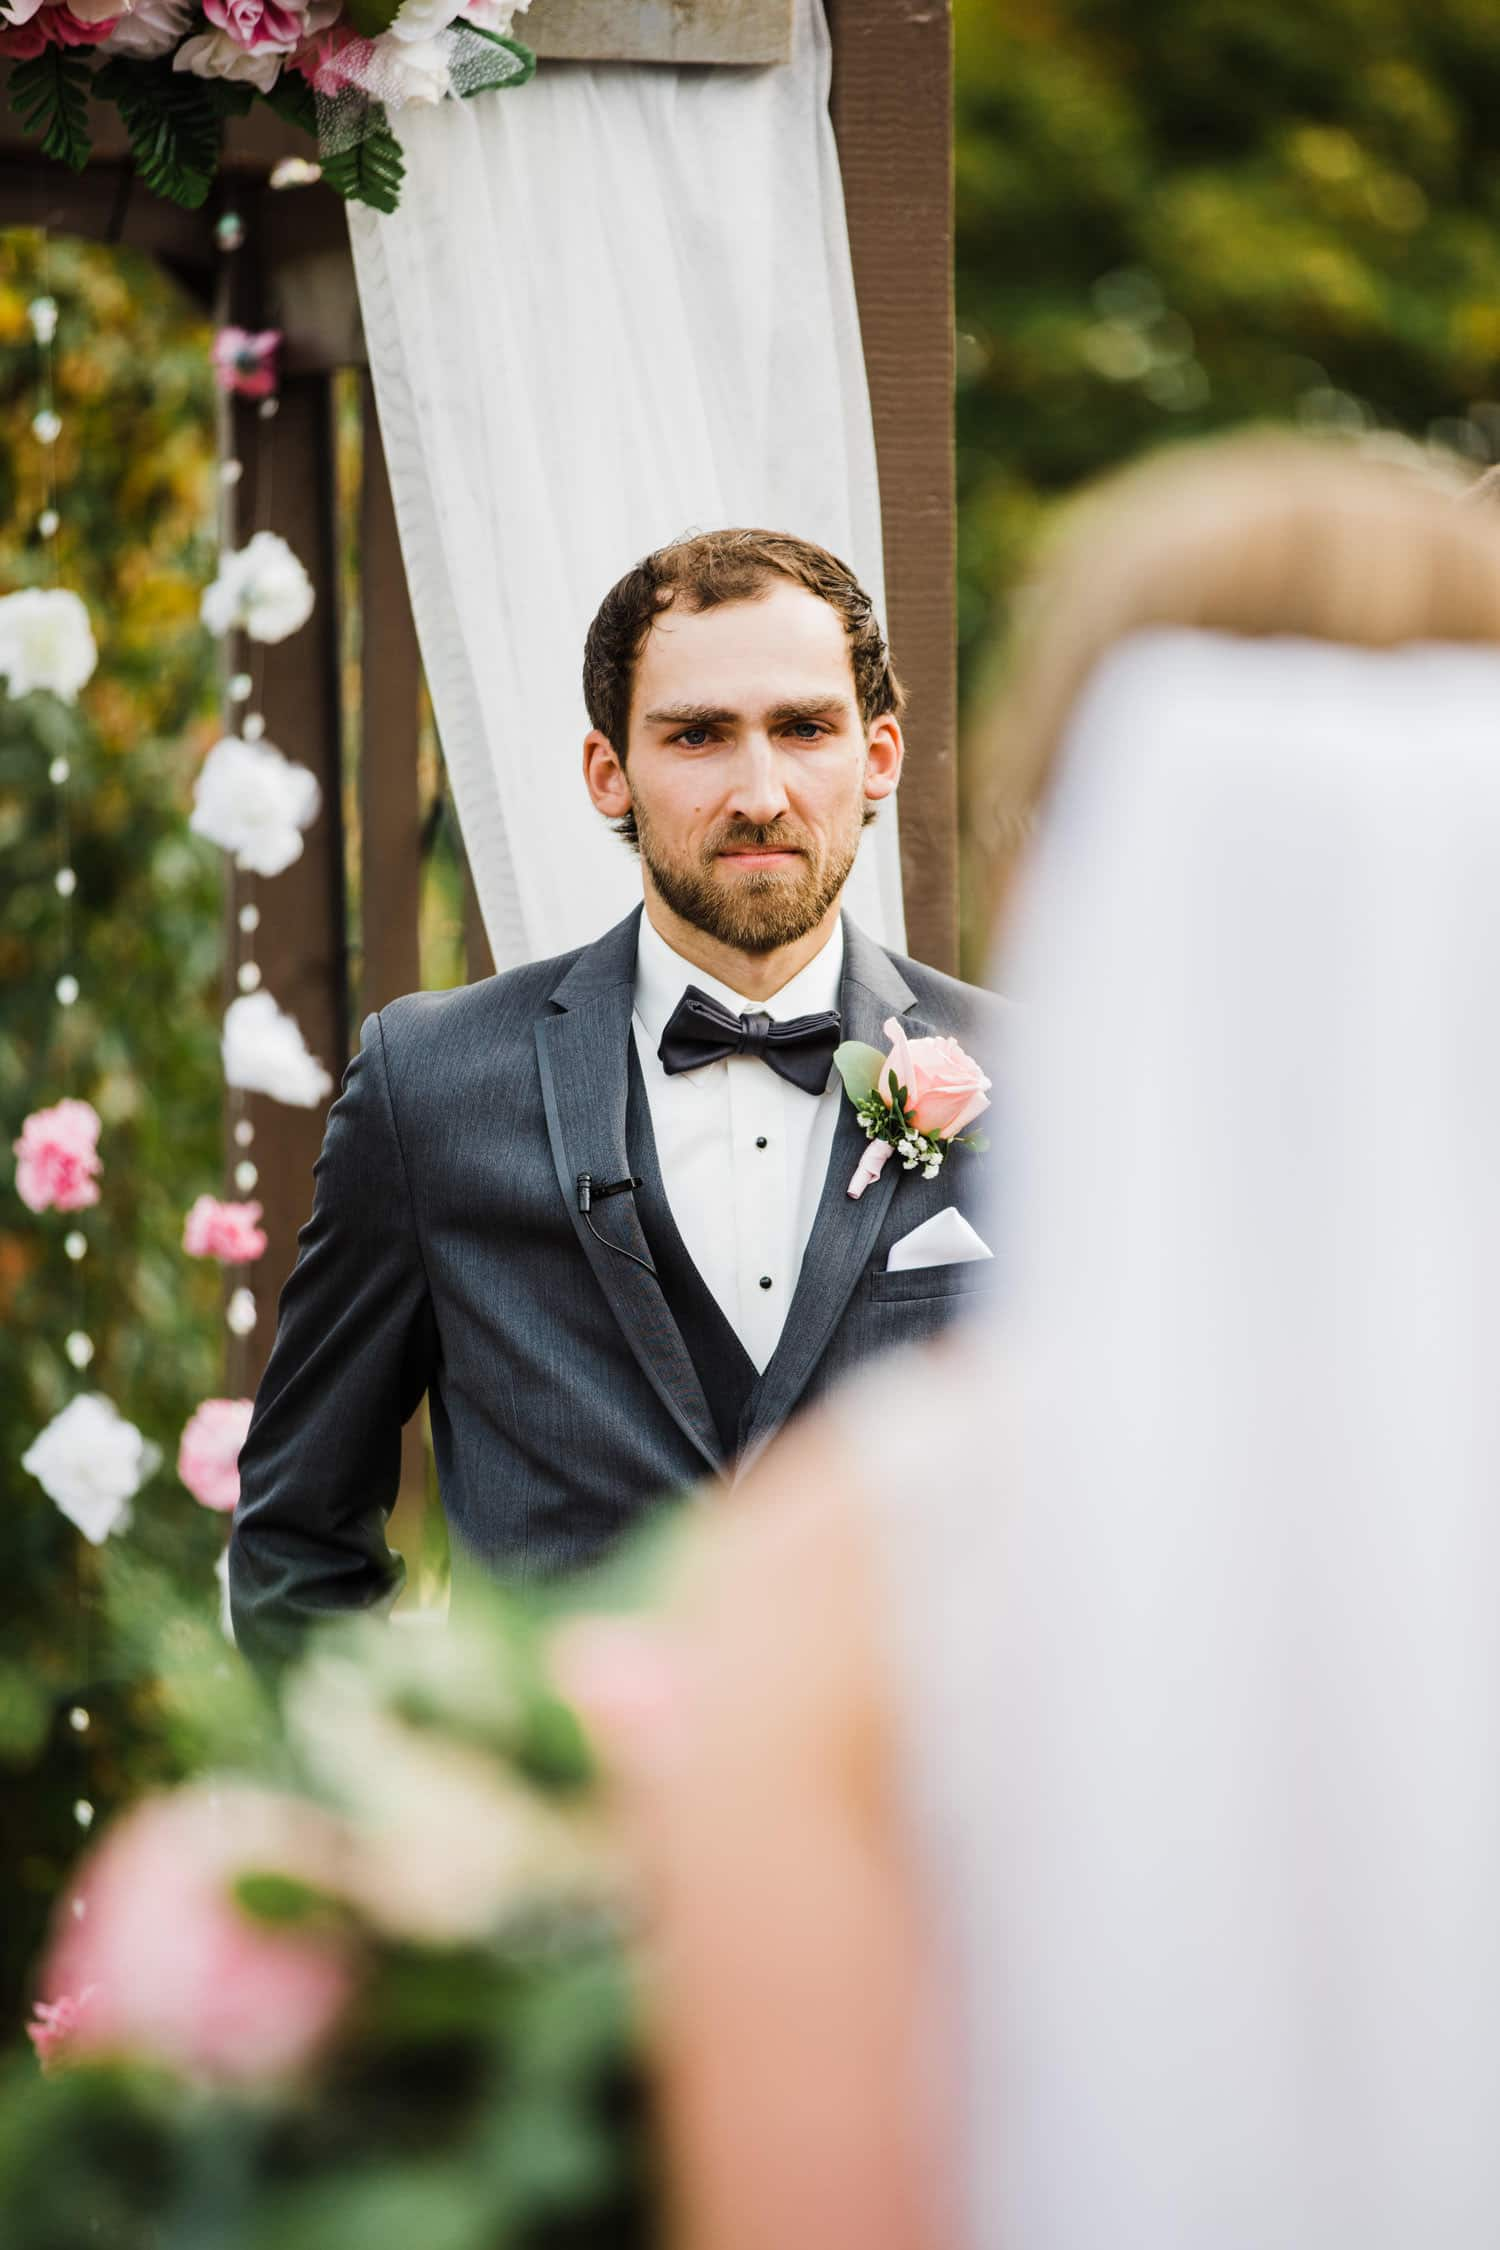 groom reacts to seeing his bride for the first time - strathmere summer wedding